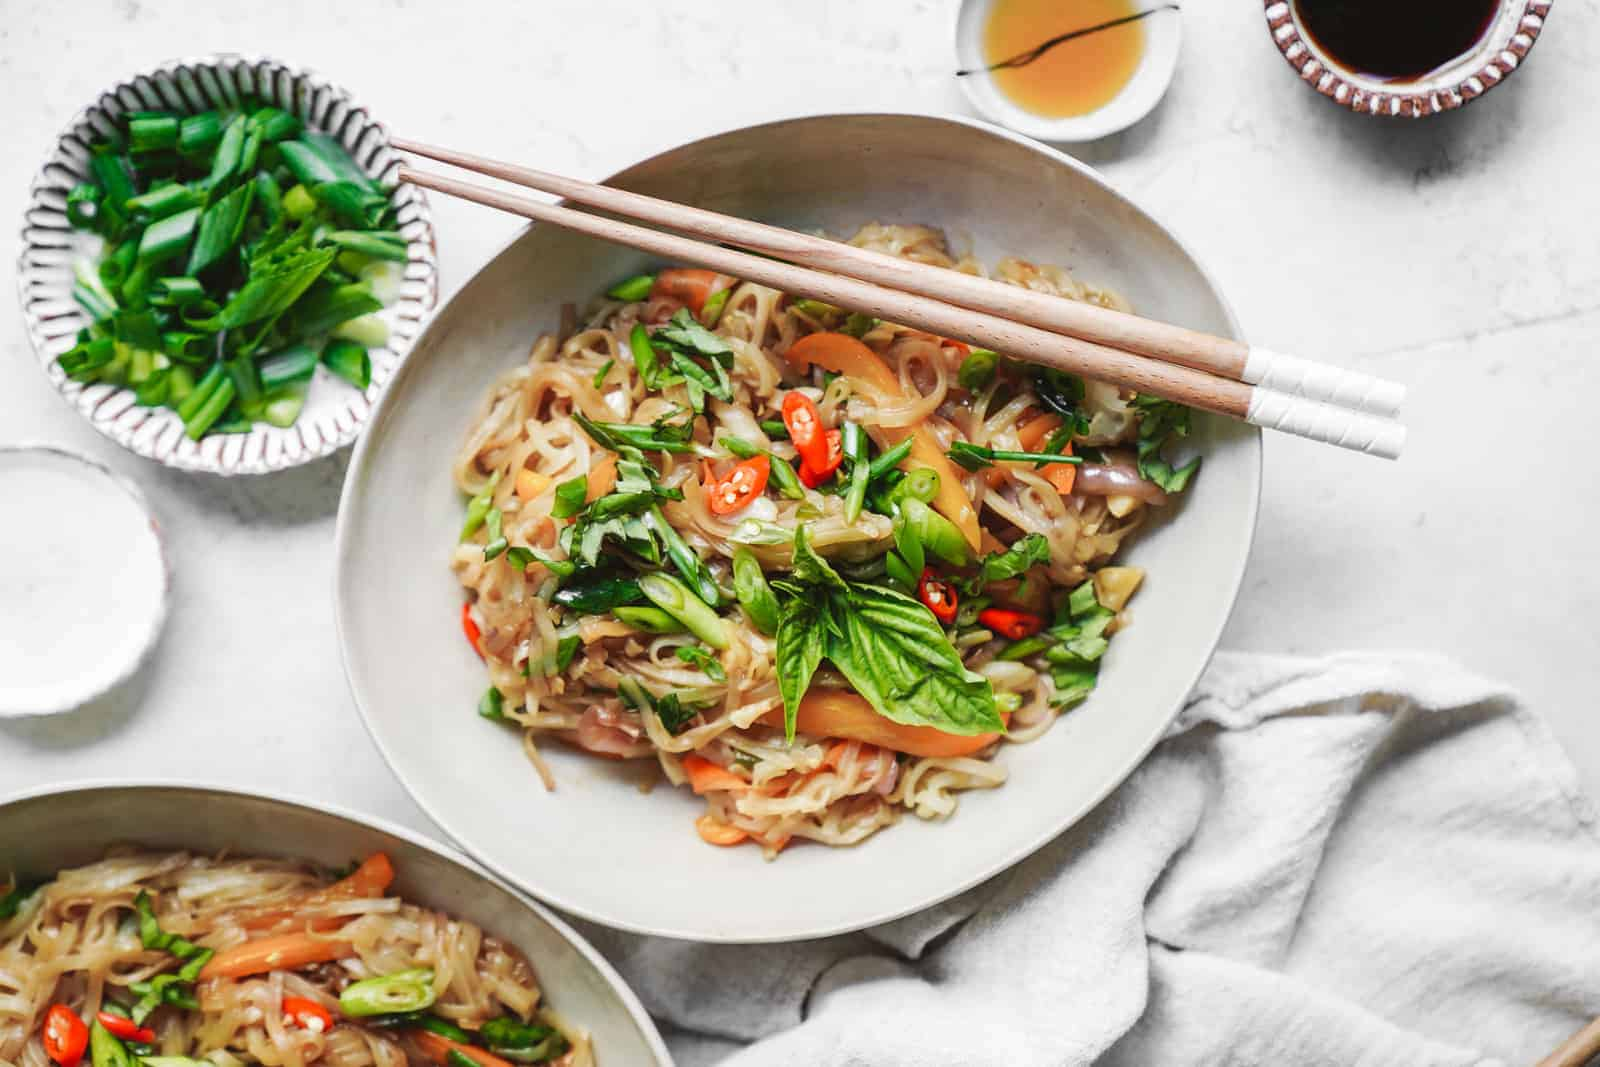 Yummy drunken noodles that are completely vegan!